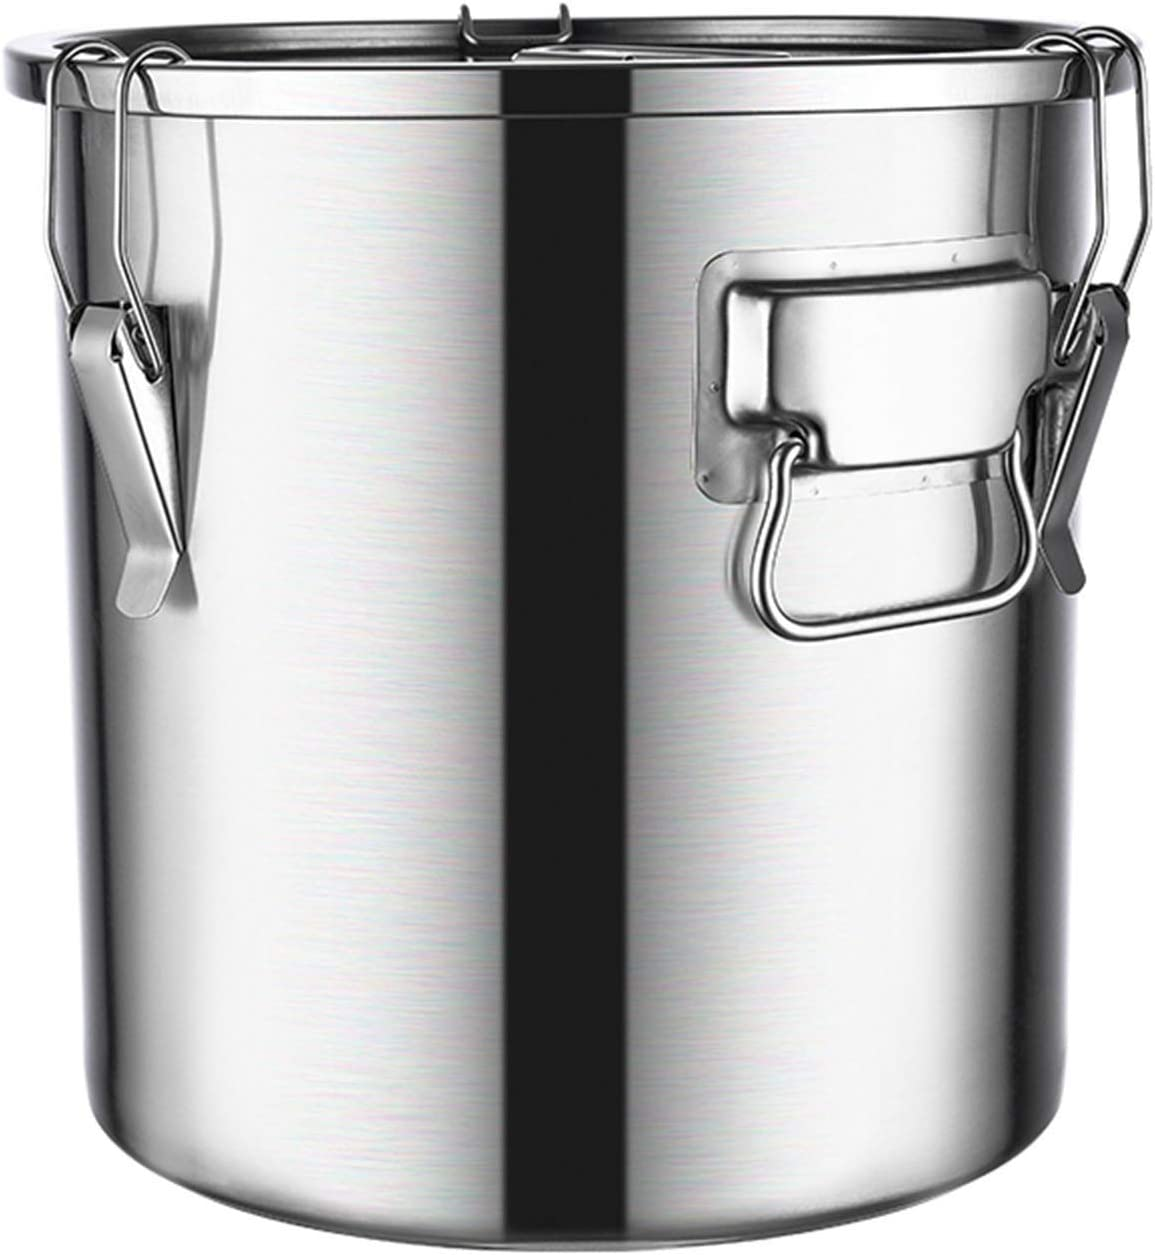 stainless steel 304 Stainless Steel Transport Milk St Cheap bargain Cans Import with